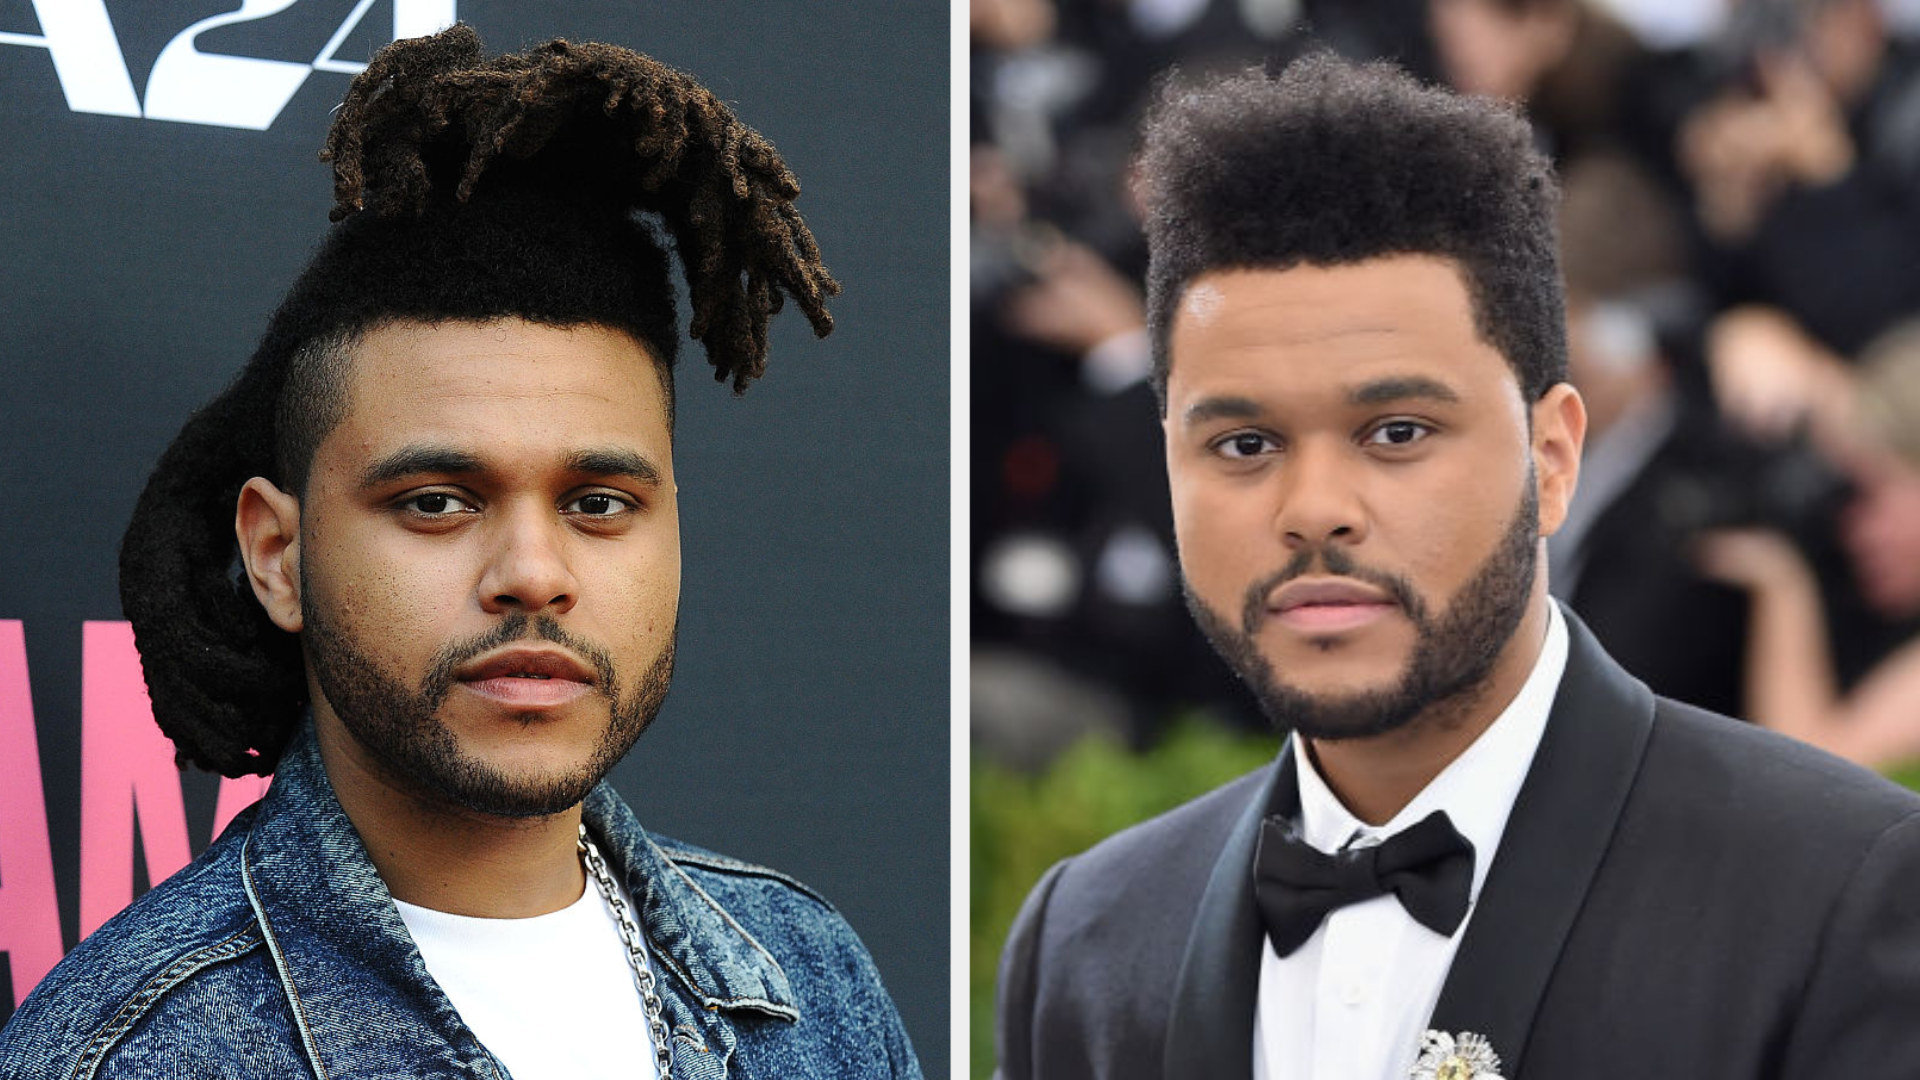 The Weeknd with long dreads and The Weeknd with a shorter hairstyle